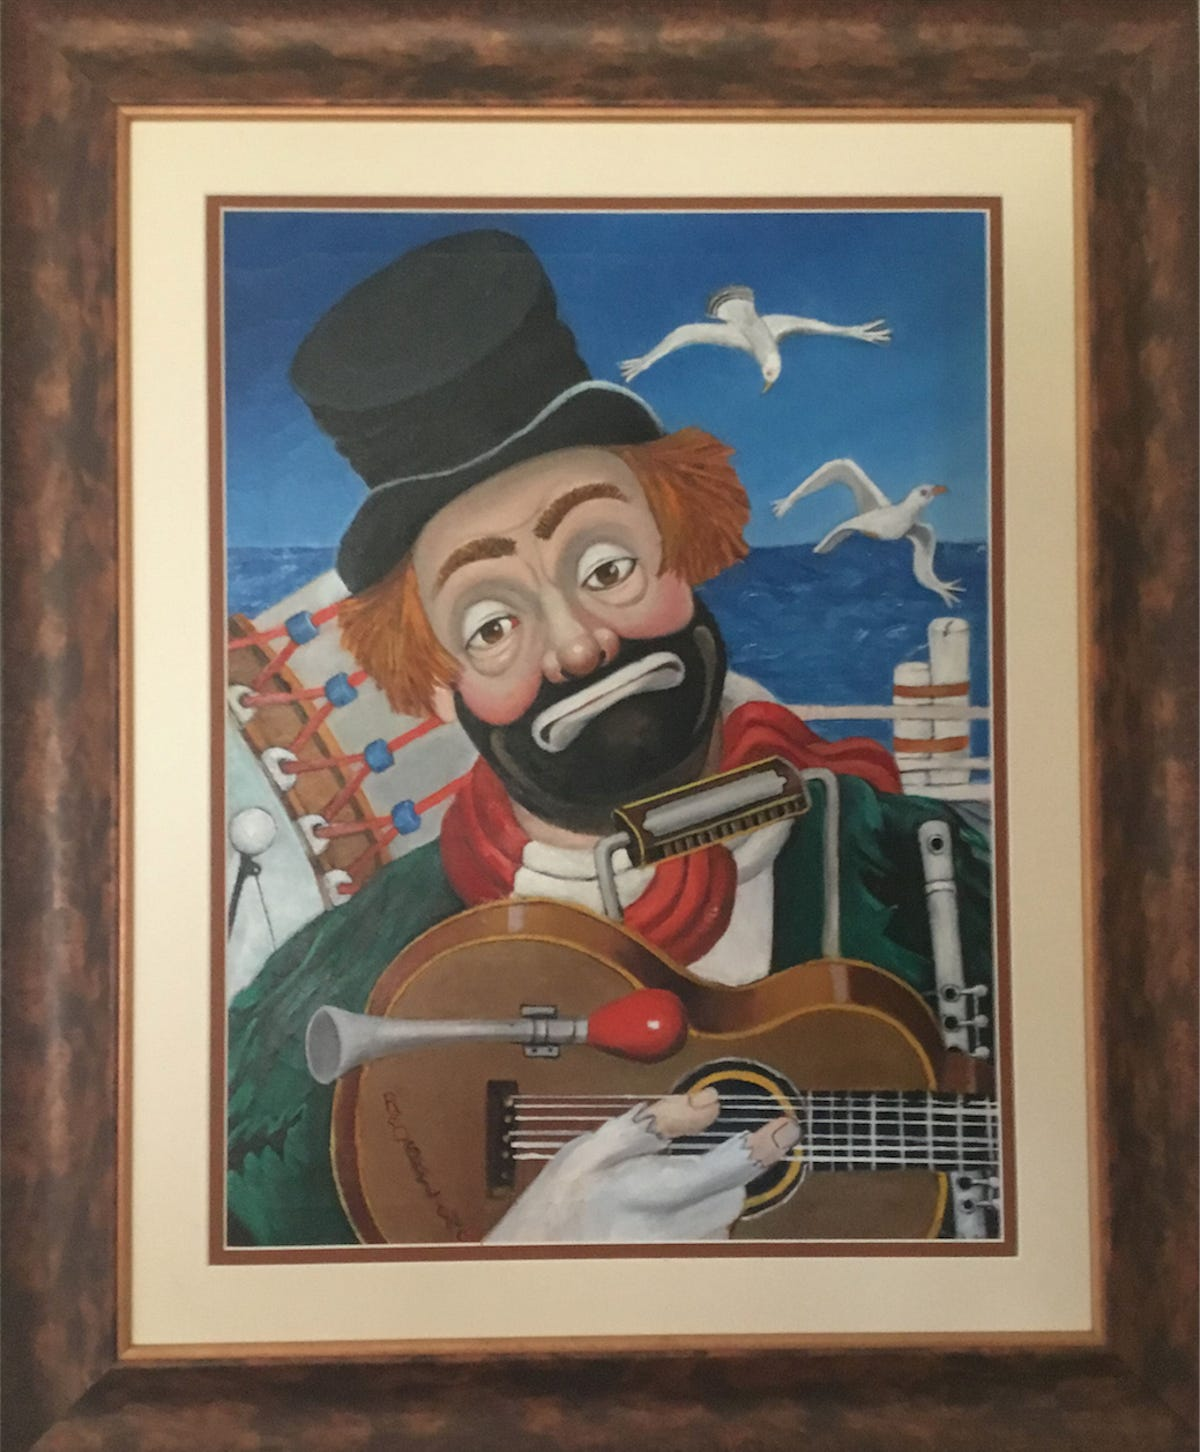 The Red Skelton Museum will celebrate its 5th birthday on